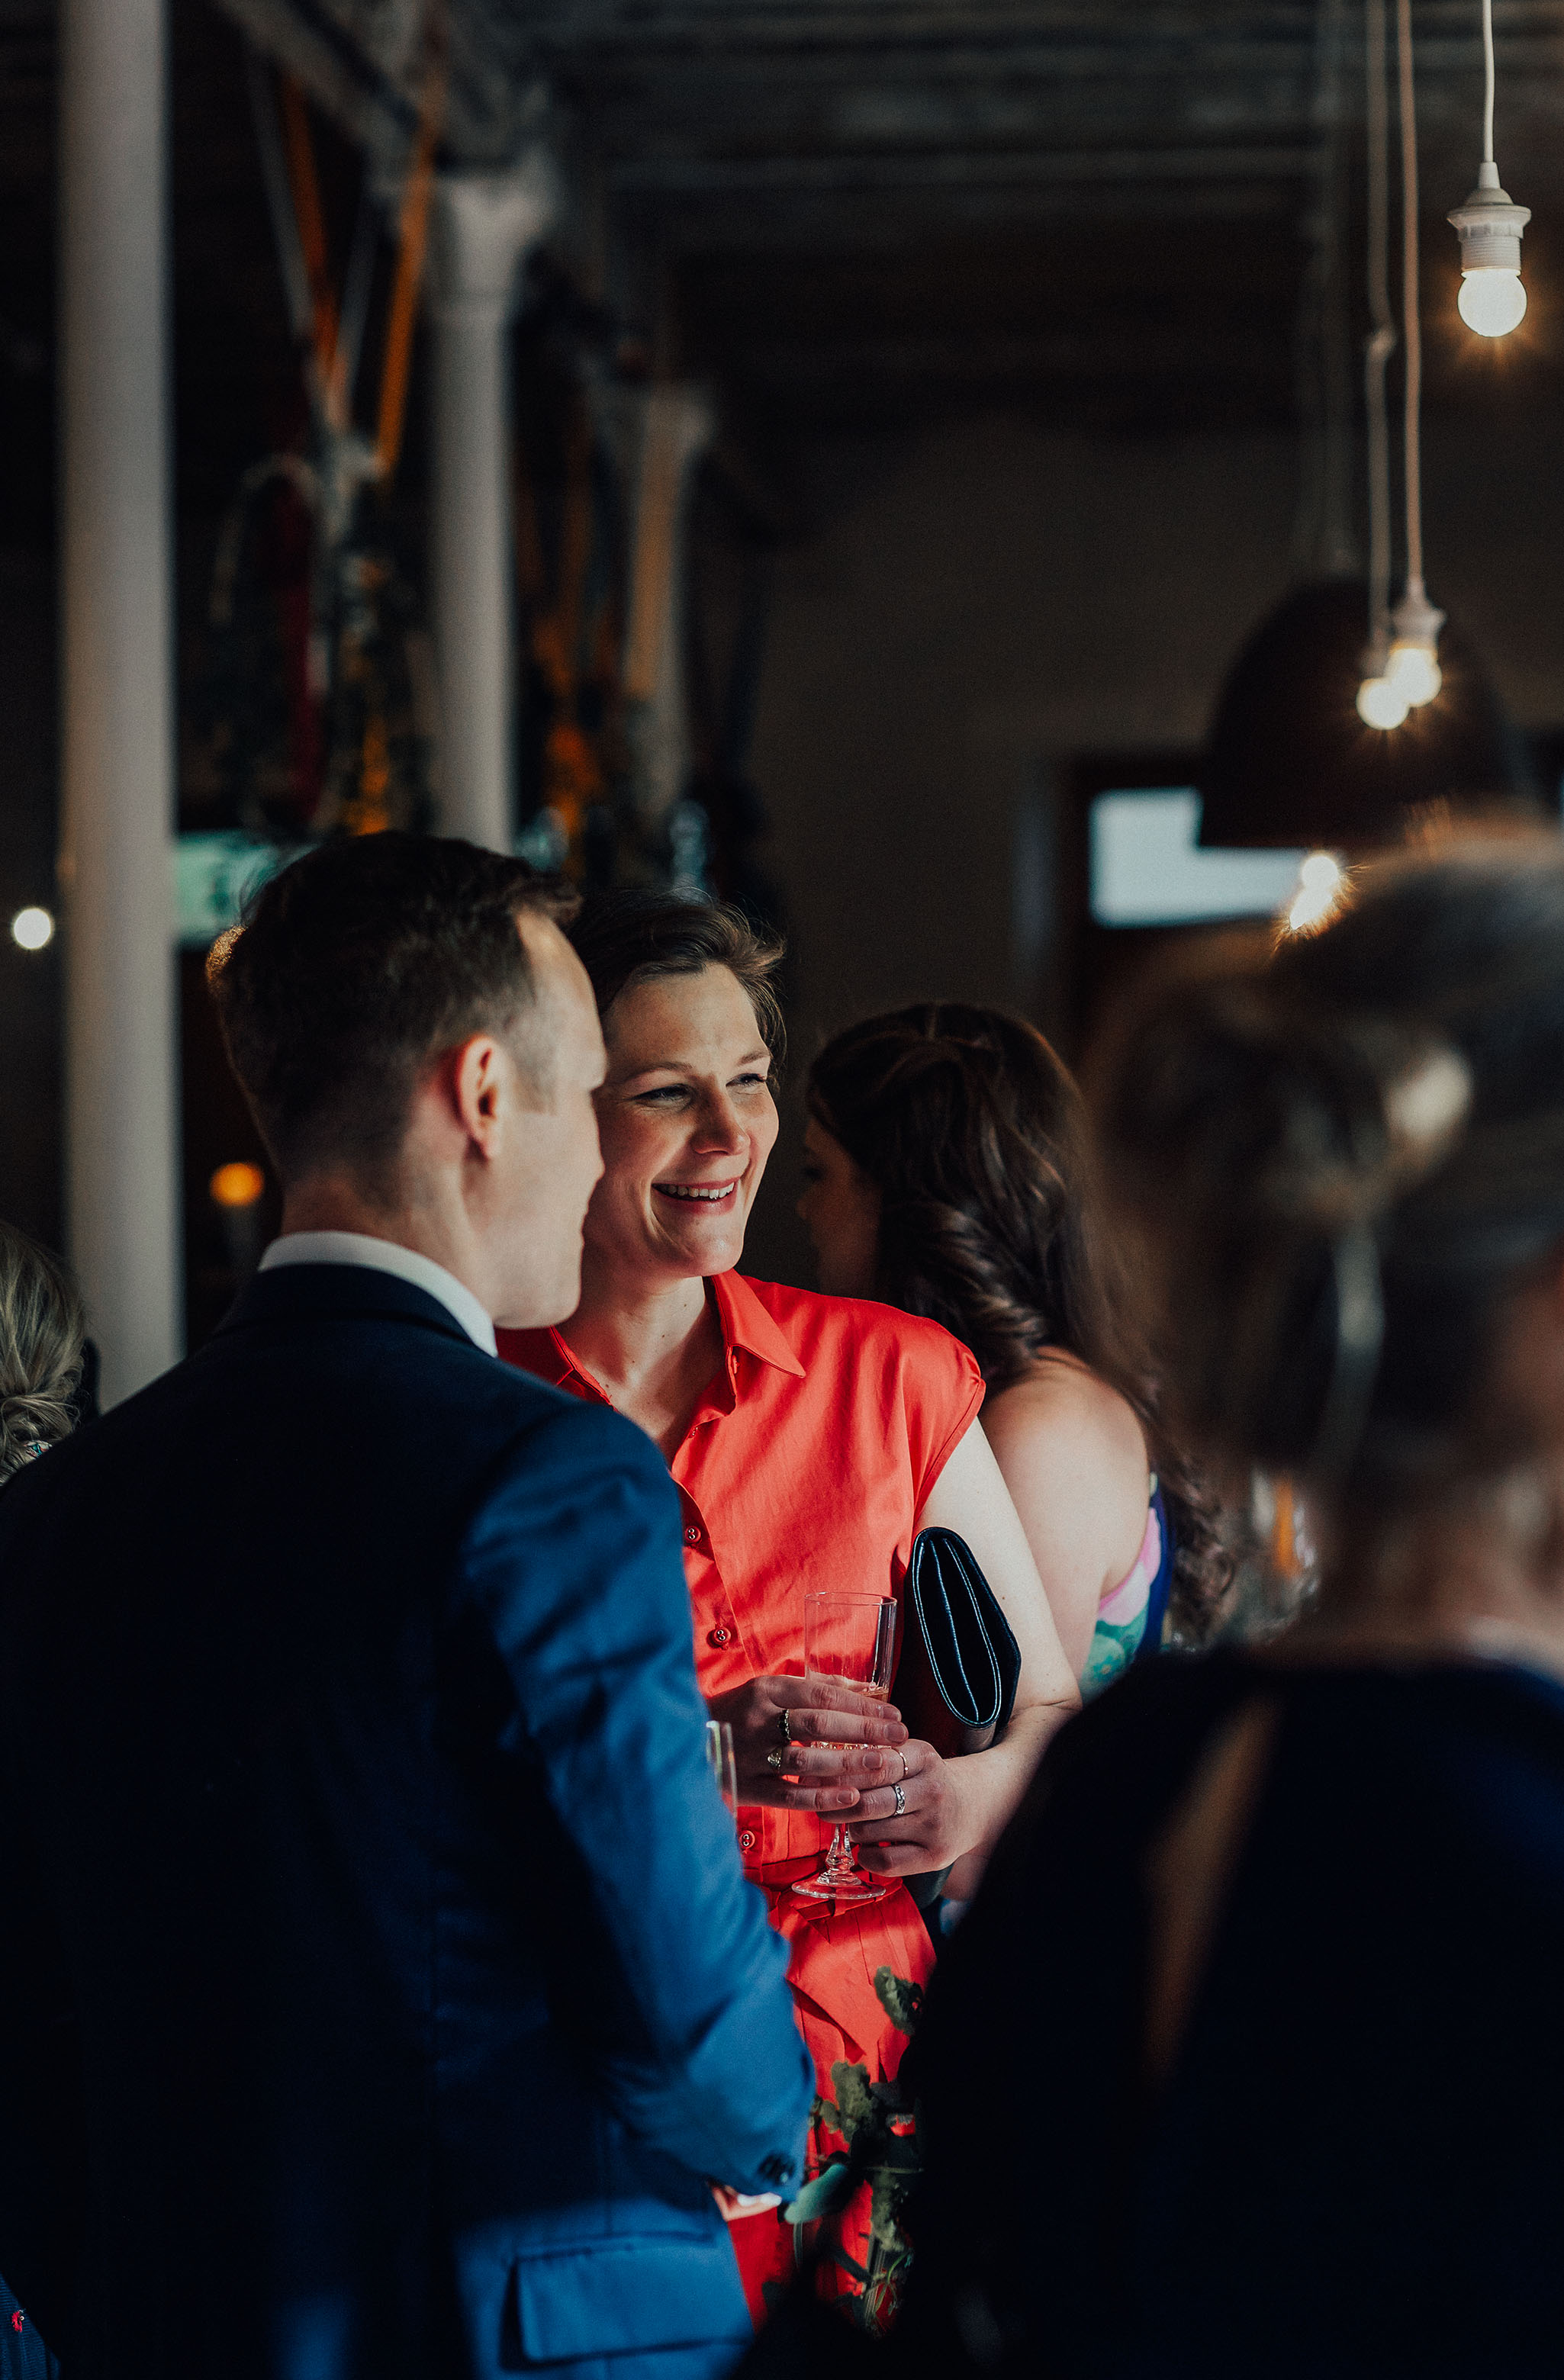 TIMBERYARD_EDINBURGH_WEDDING_PJ_PHILLIPS_PHOTOGRAPHY_131.jpg